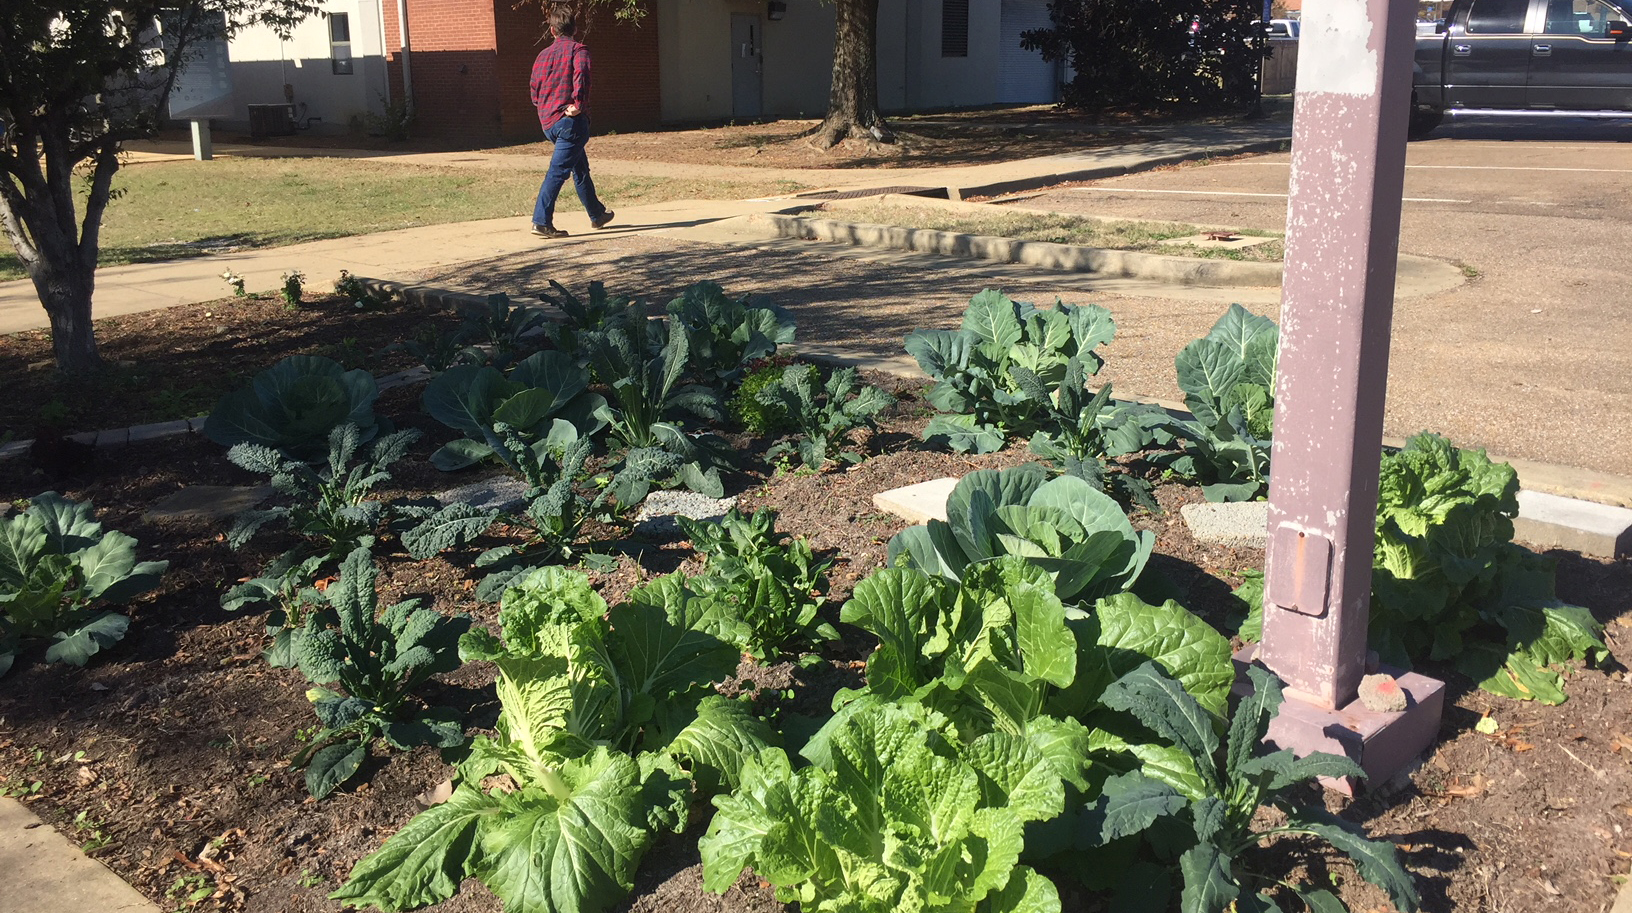 Cabbages, kale, and mustard greens grow in a landscape bed on the MSU campus.